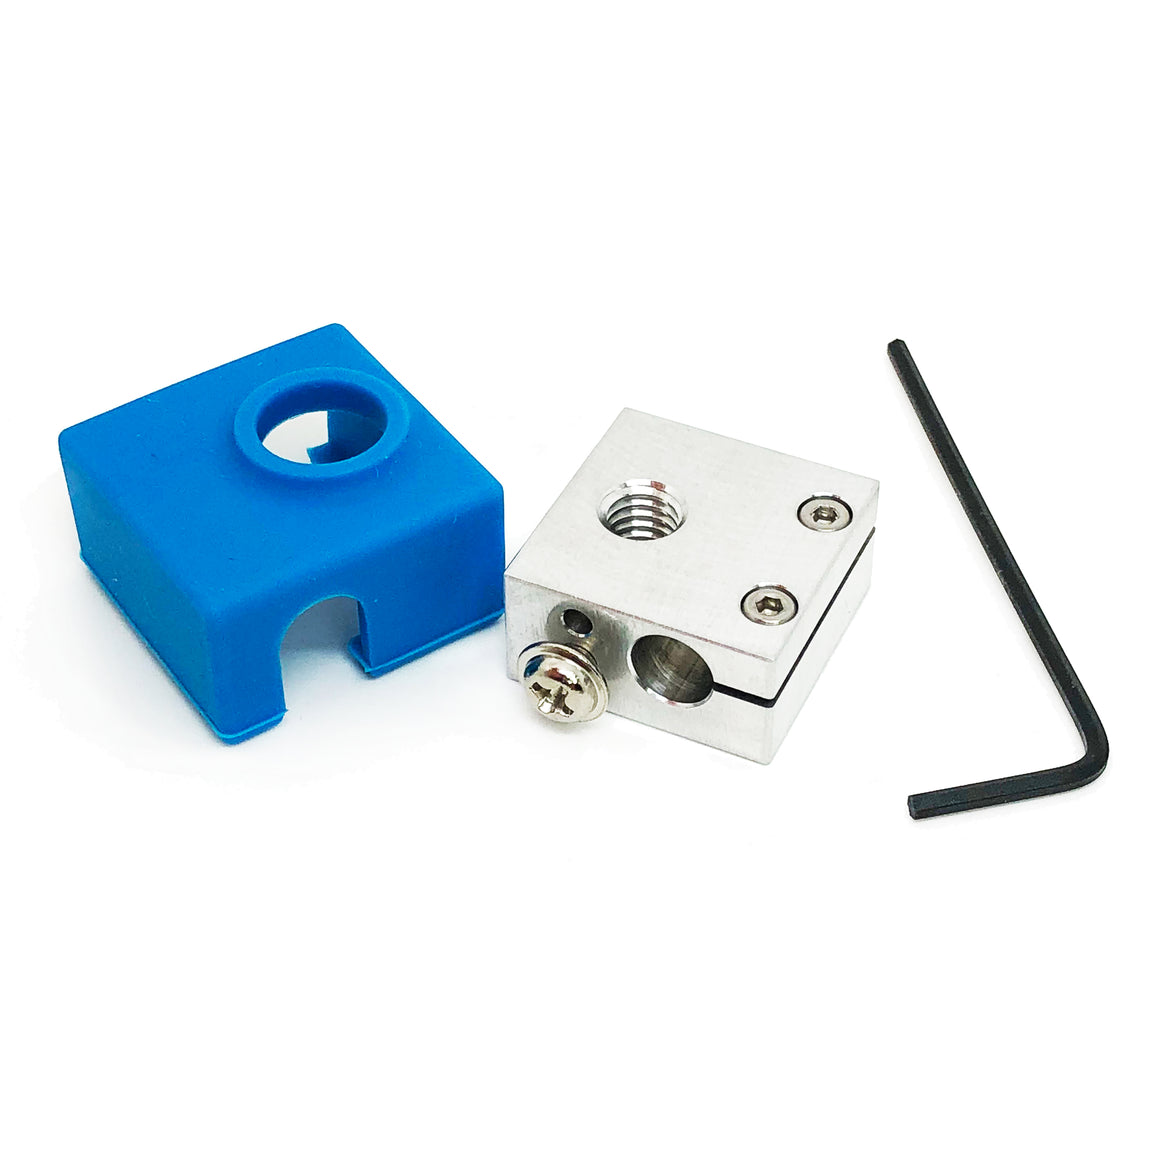 Heater Block Upgrade with Silicone Sock for CR10 / Ender 2 / Ender 3 / ANET A8 Printers MK7, MK8, MK9 Hotends